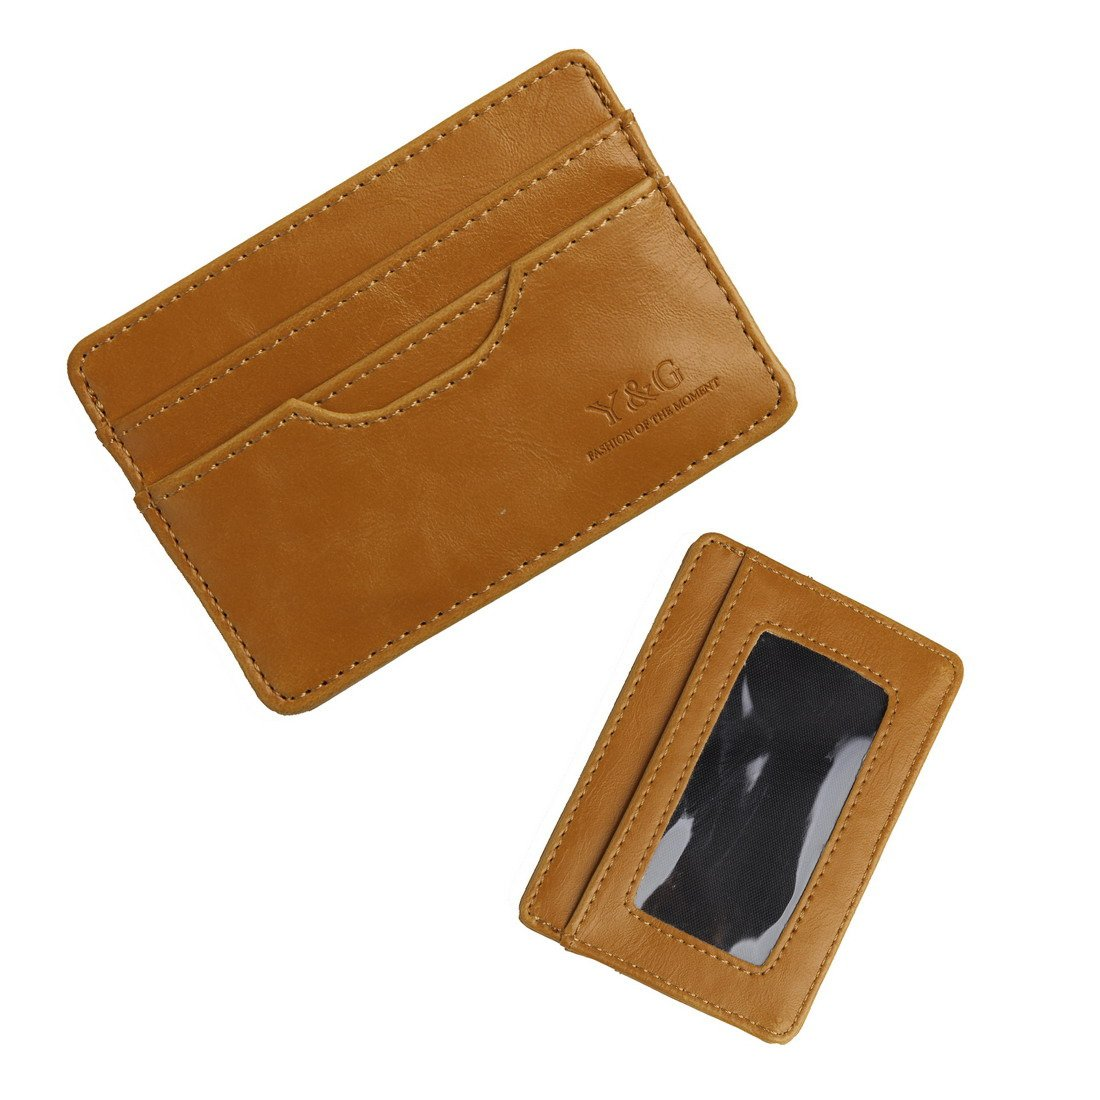 YCM040102 Dark Brown Id Card Holder With 5 card holder Gift For Men Gift For Men By Y& G Credit/Id Case Holder Wallet